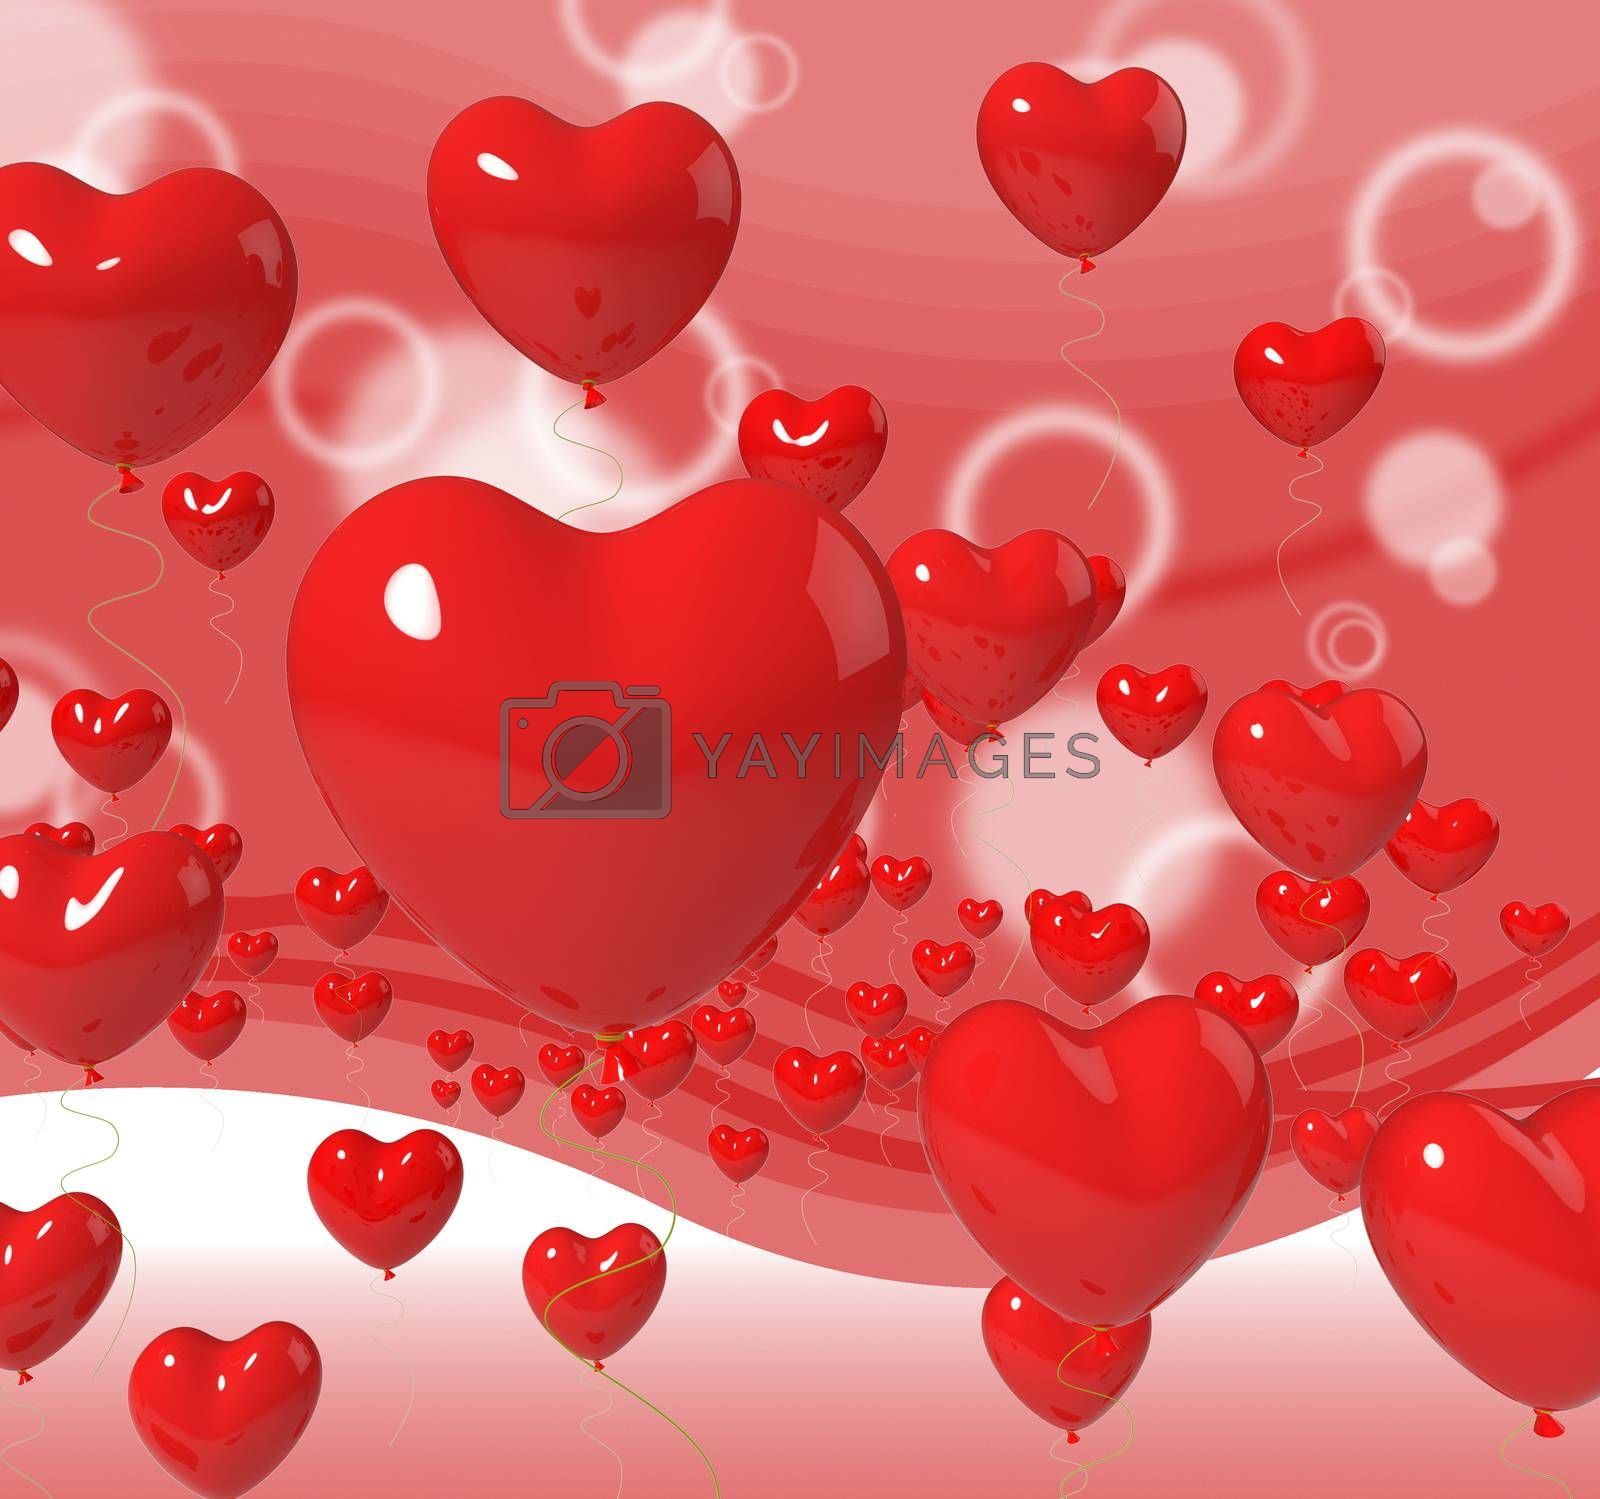 Heart Balloons On Background Meaning Passion Love And Romance